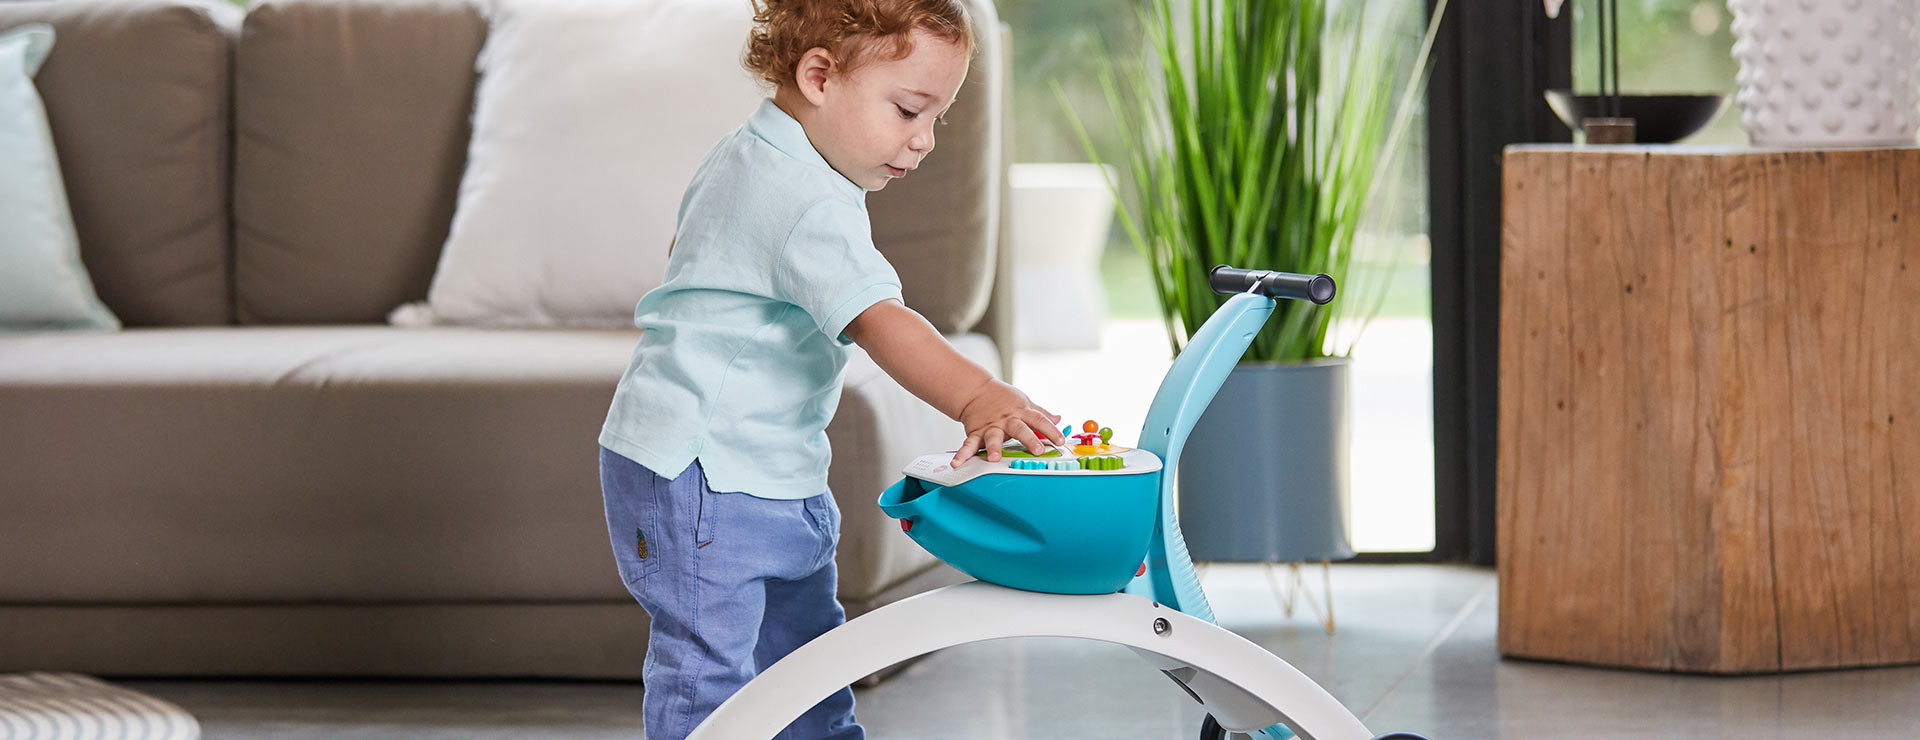 Push-to-stand mode encourages curiosity, teaching baby to explore the world from a new angle